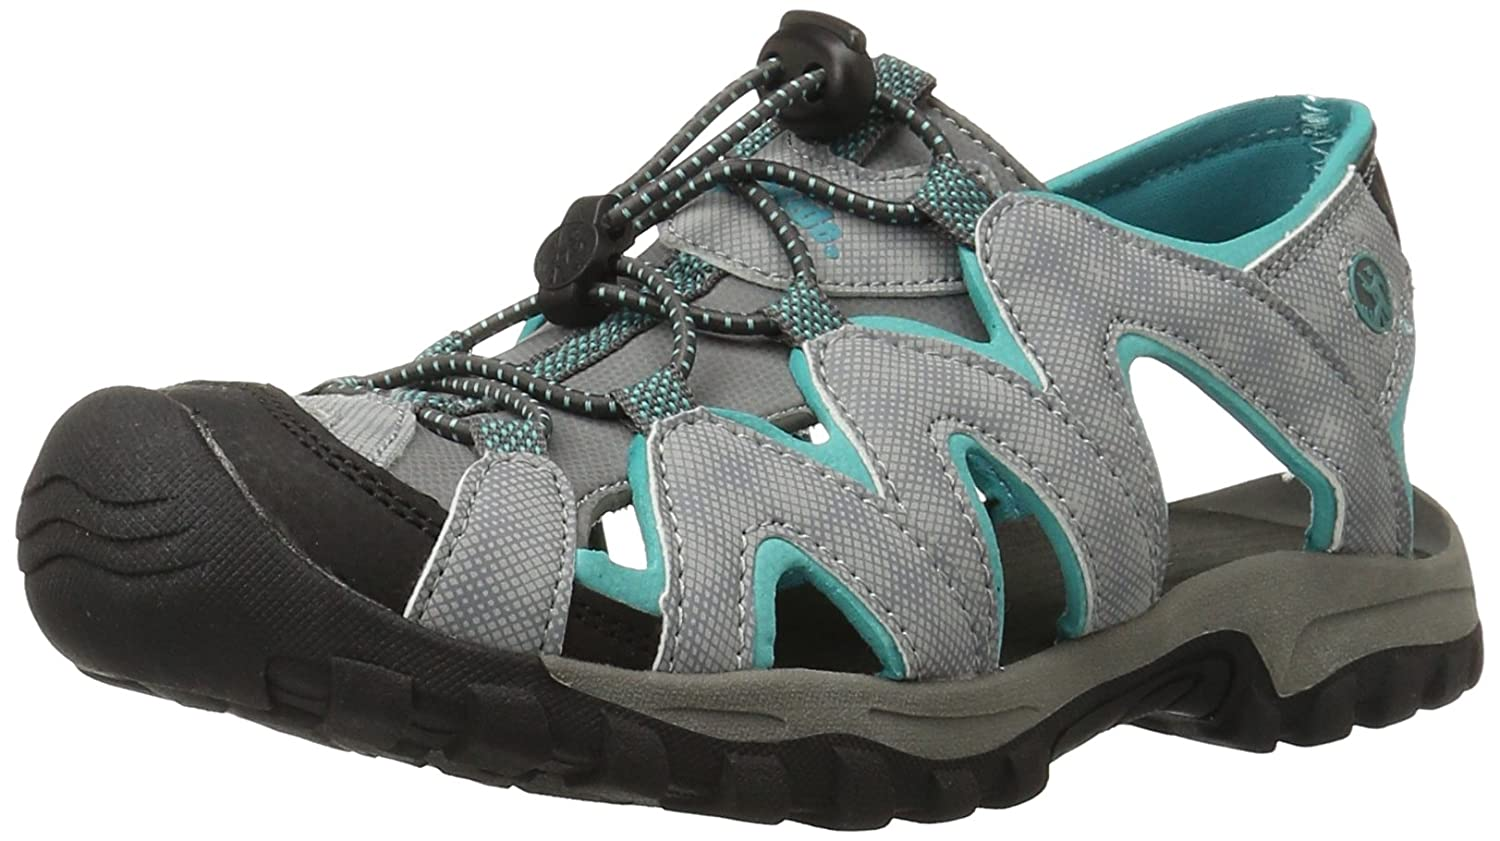 Northside Women's Corona Sandal B00E7OOPXI 7 B(M) US|Light Grey/Aqua